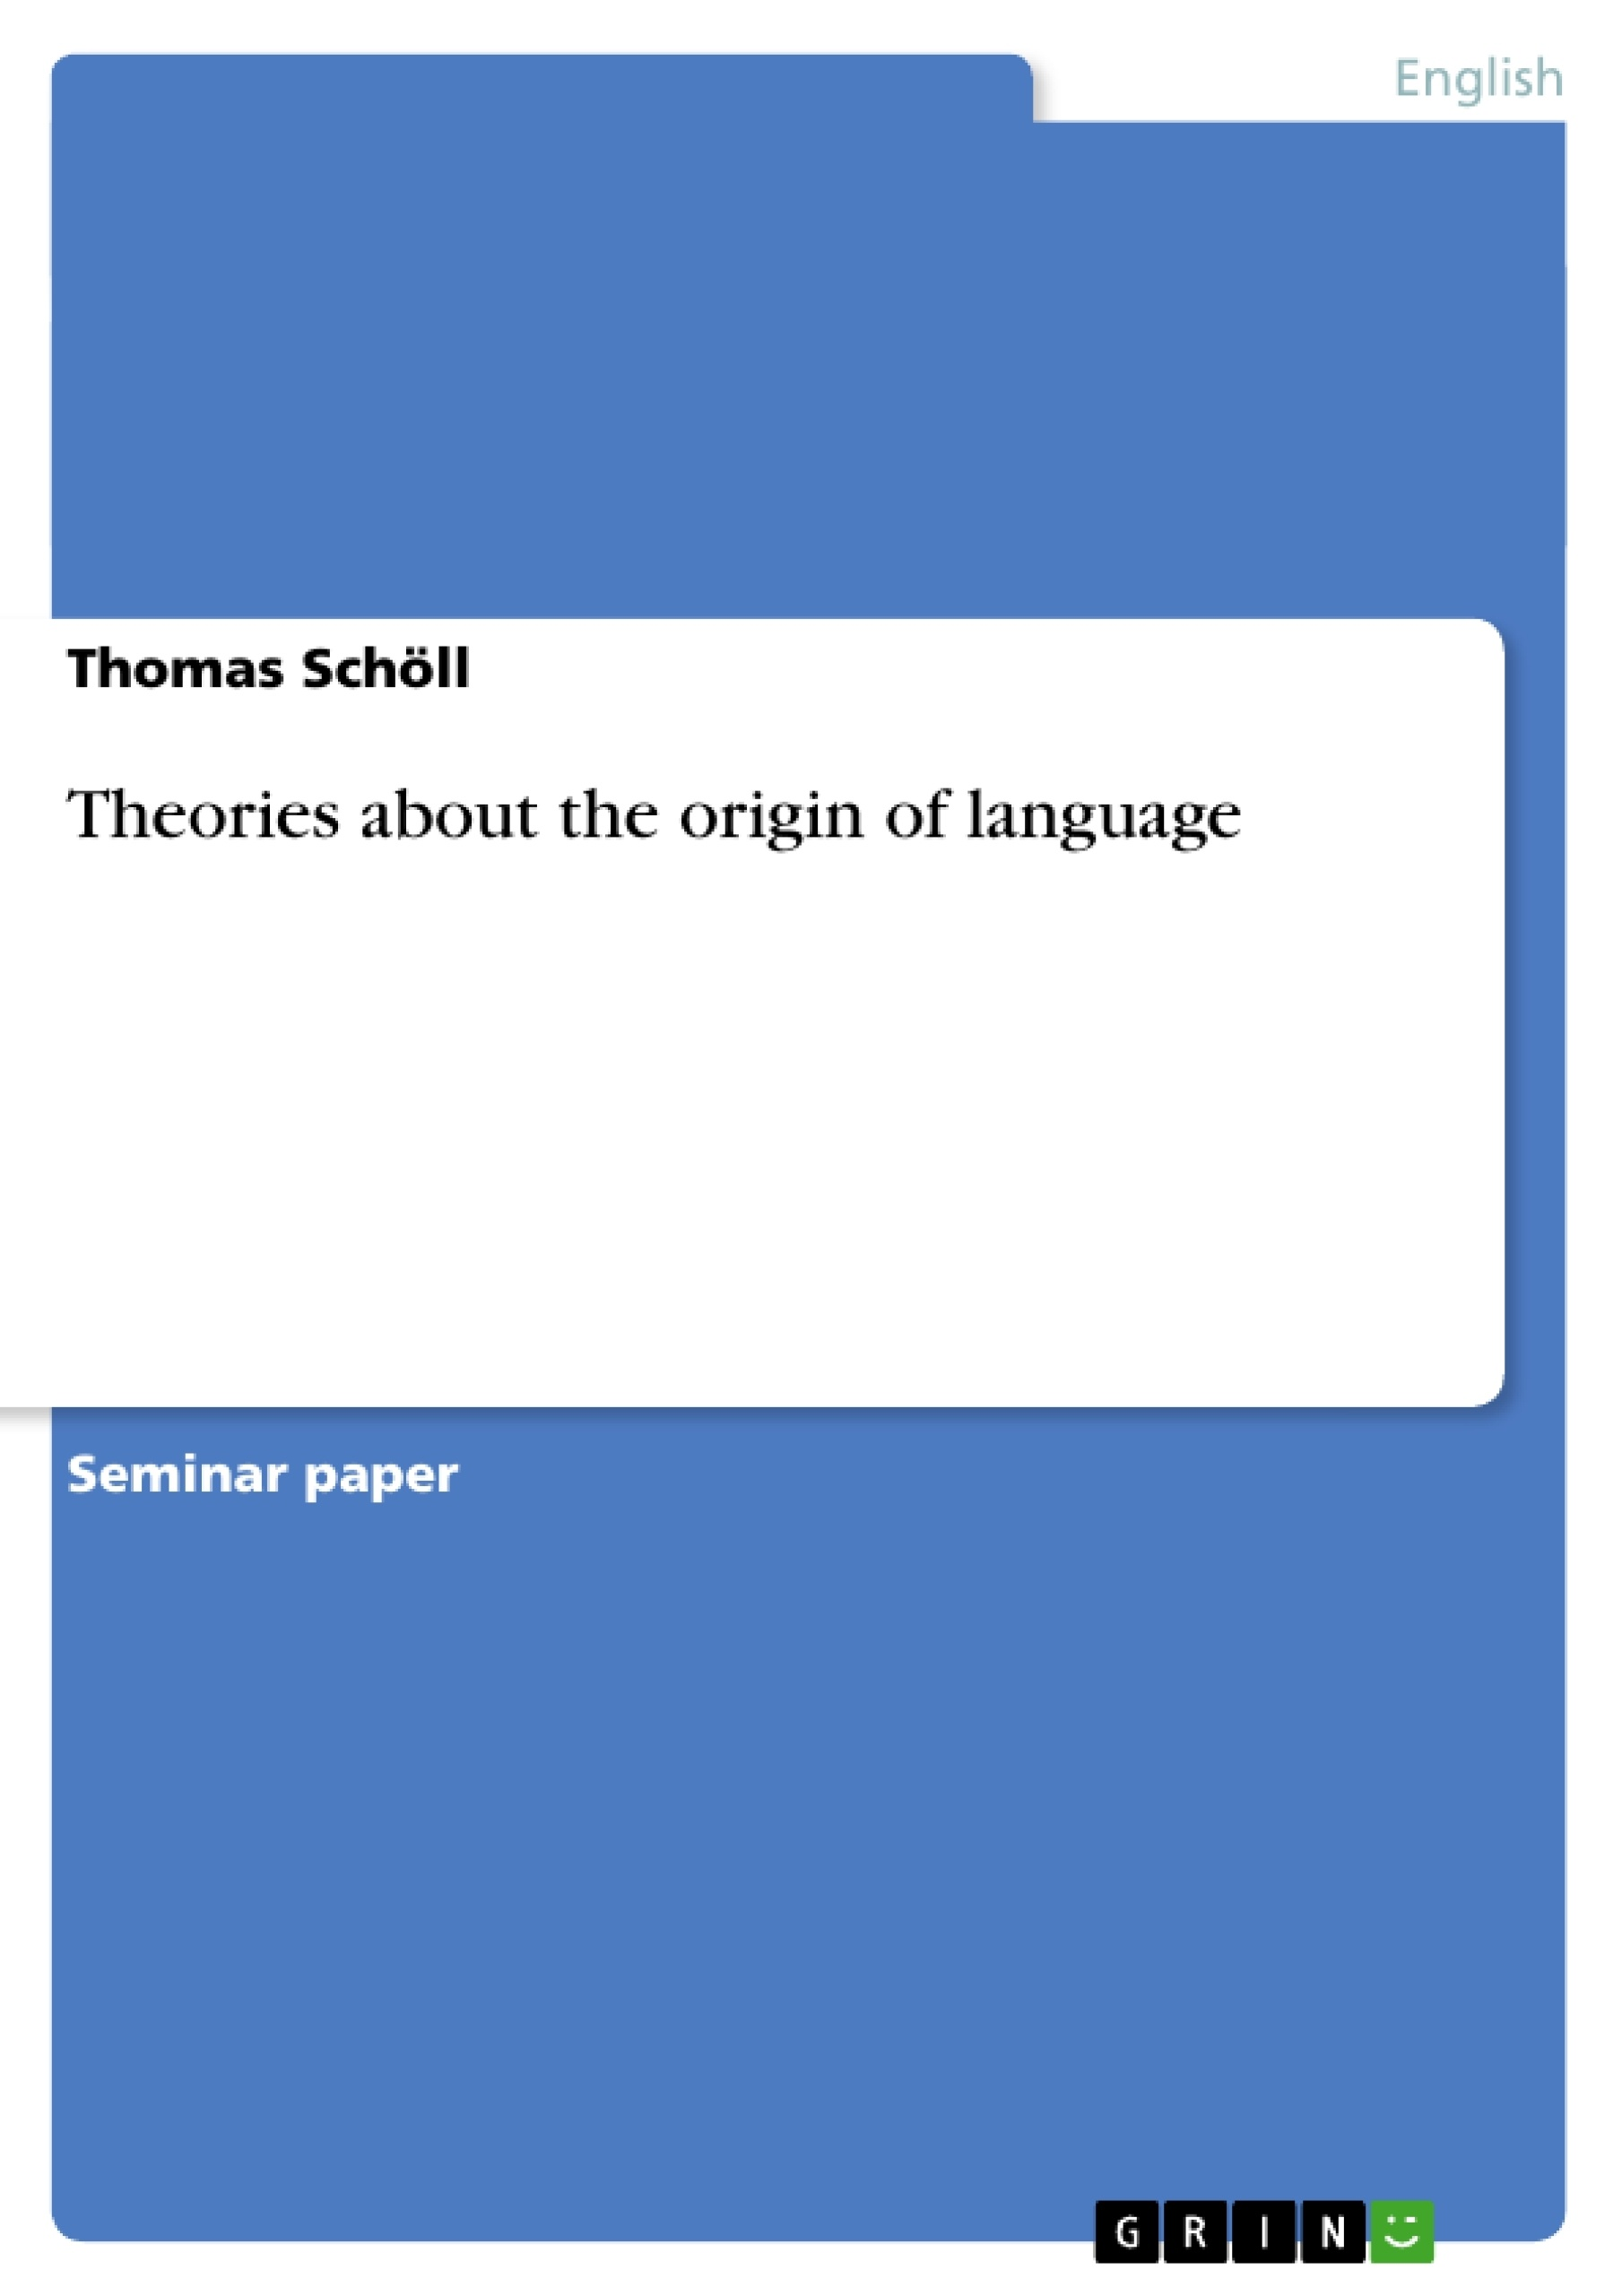 Title: Theories about the origin of language